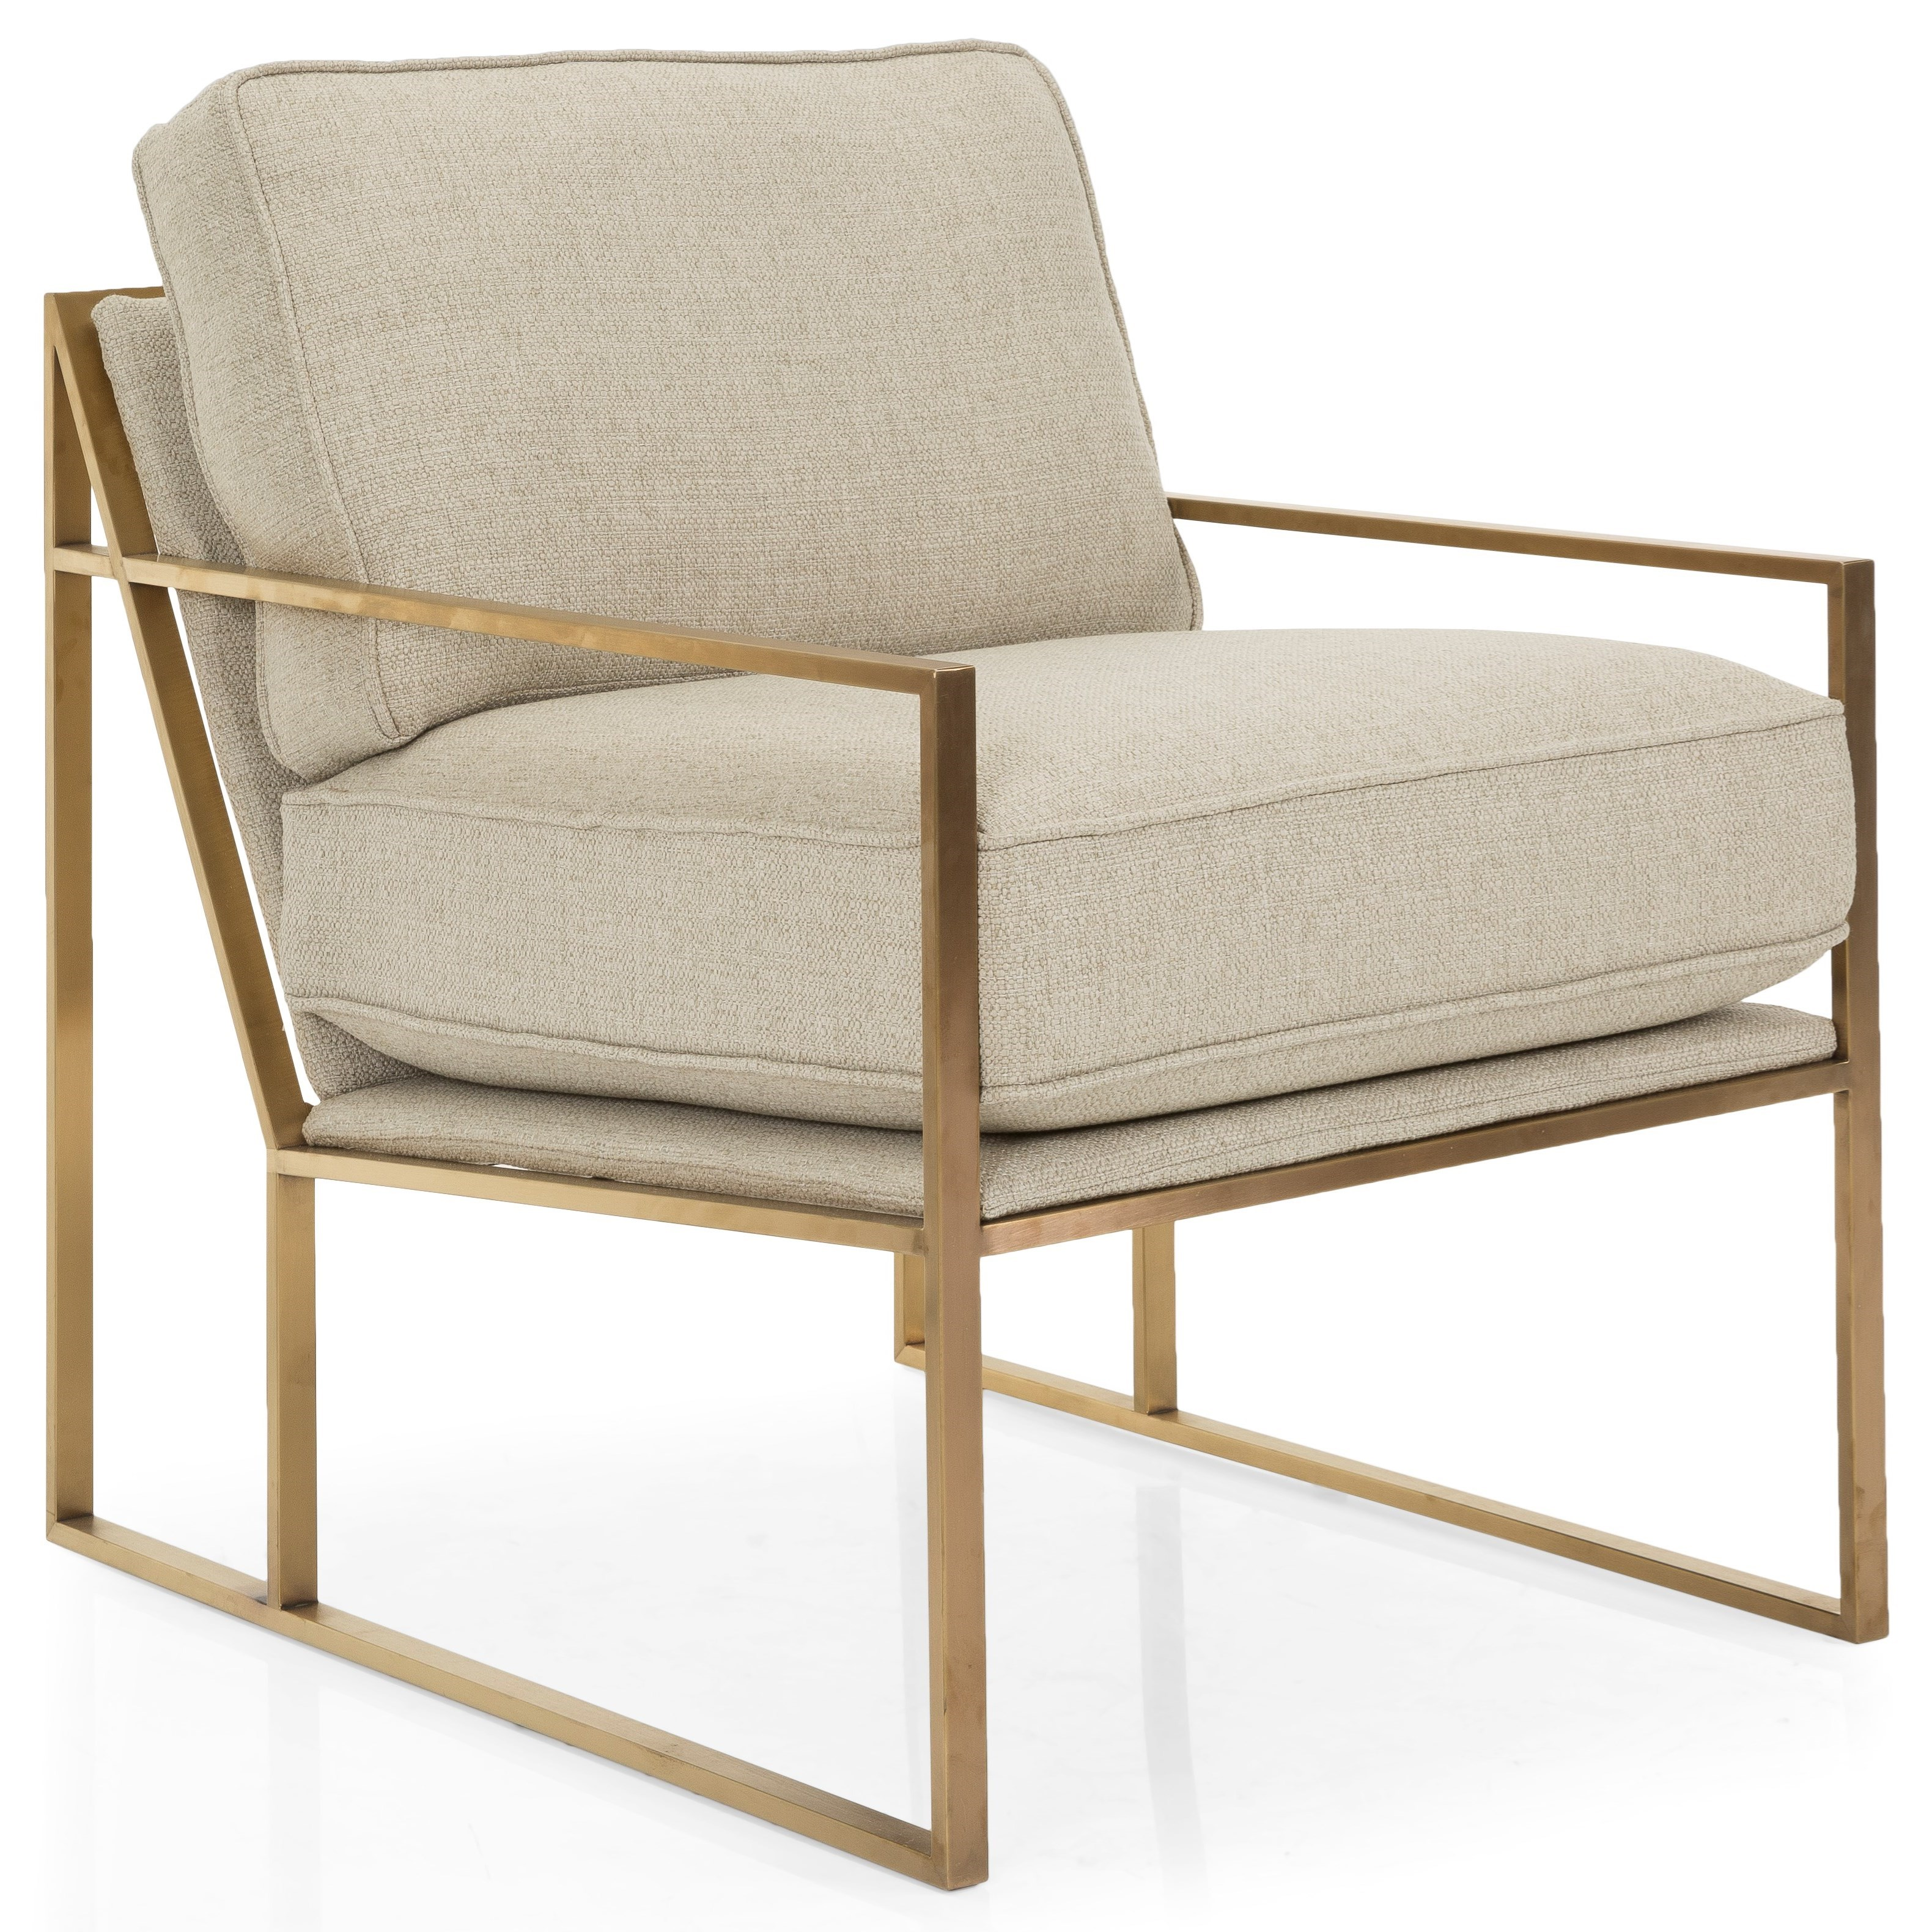 2782 Chair by Decor-Rest at Reid's Furniture